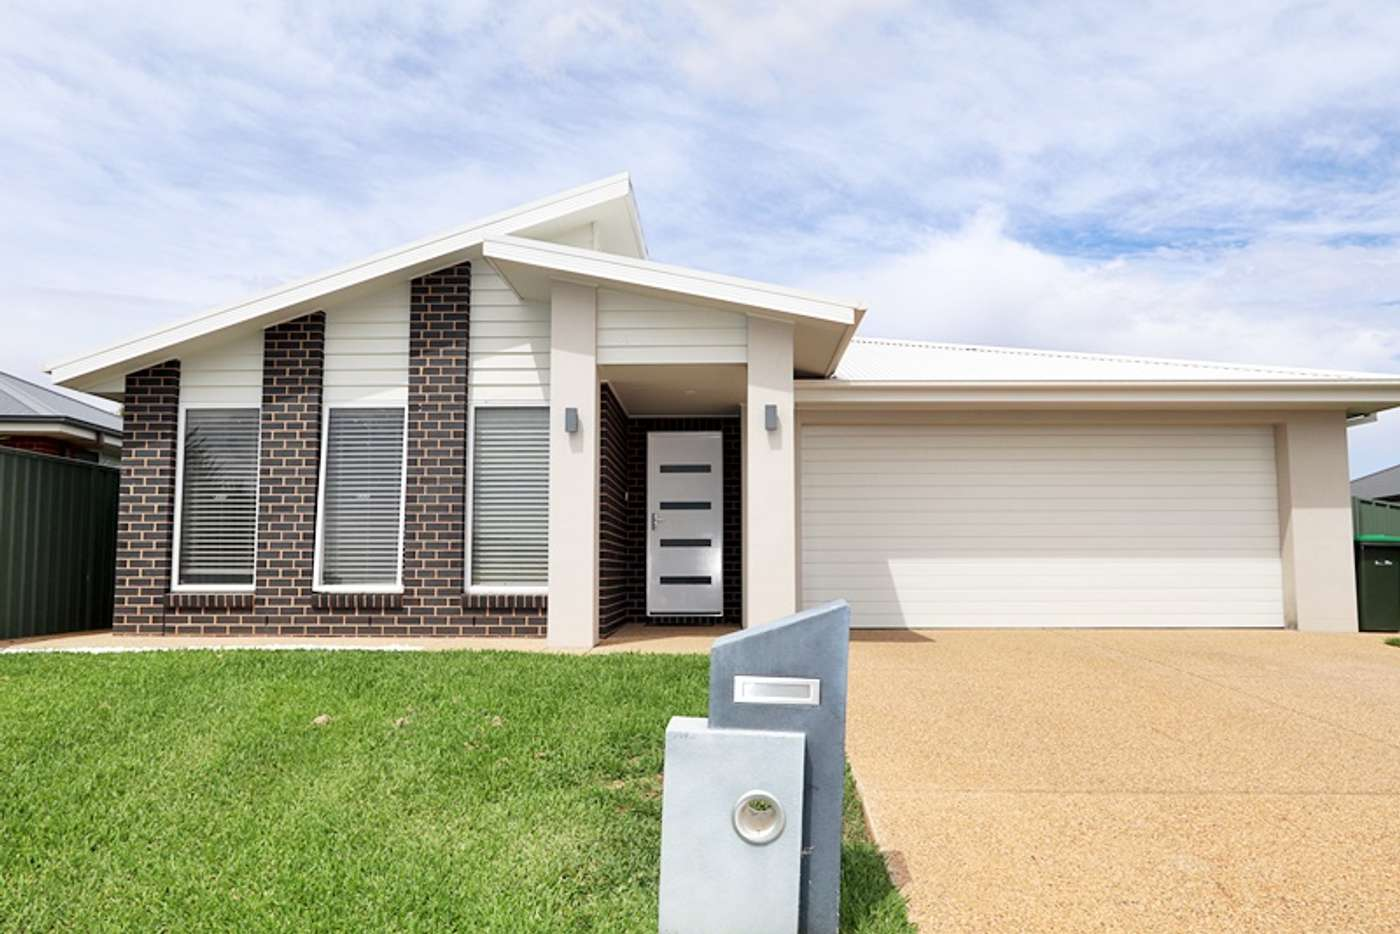 Main view of Homely house listing, 16 Mangrove Crescent, Forest Hill NSW 2651